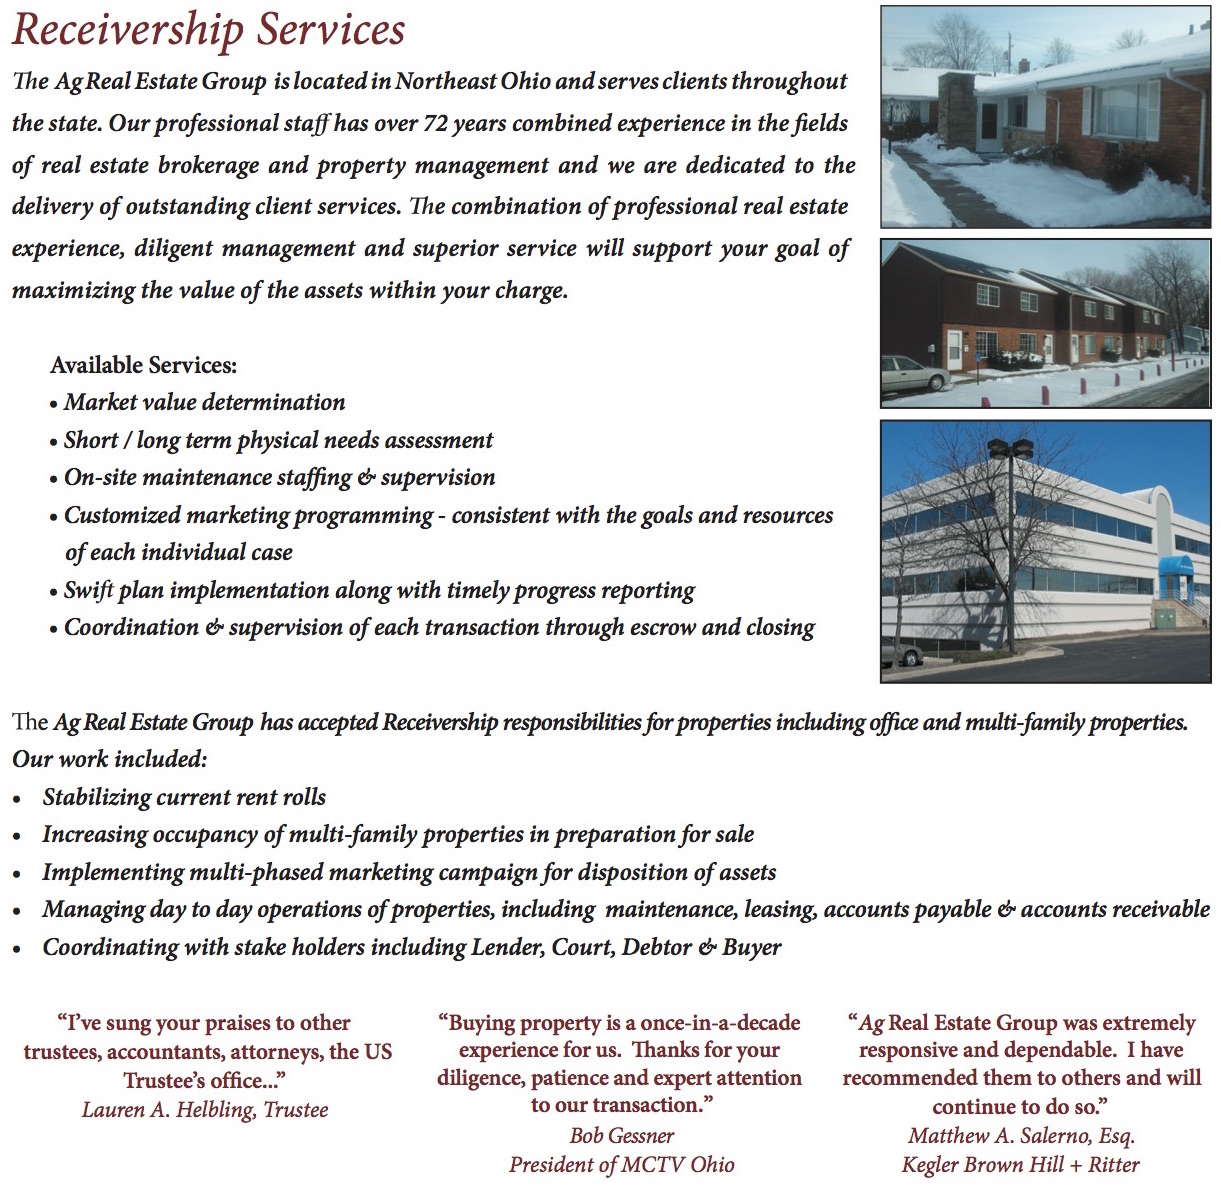 receivership-services